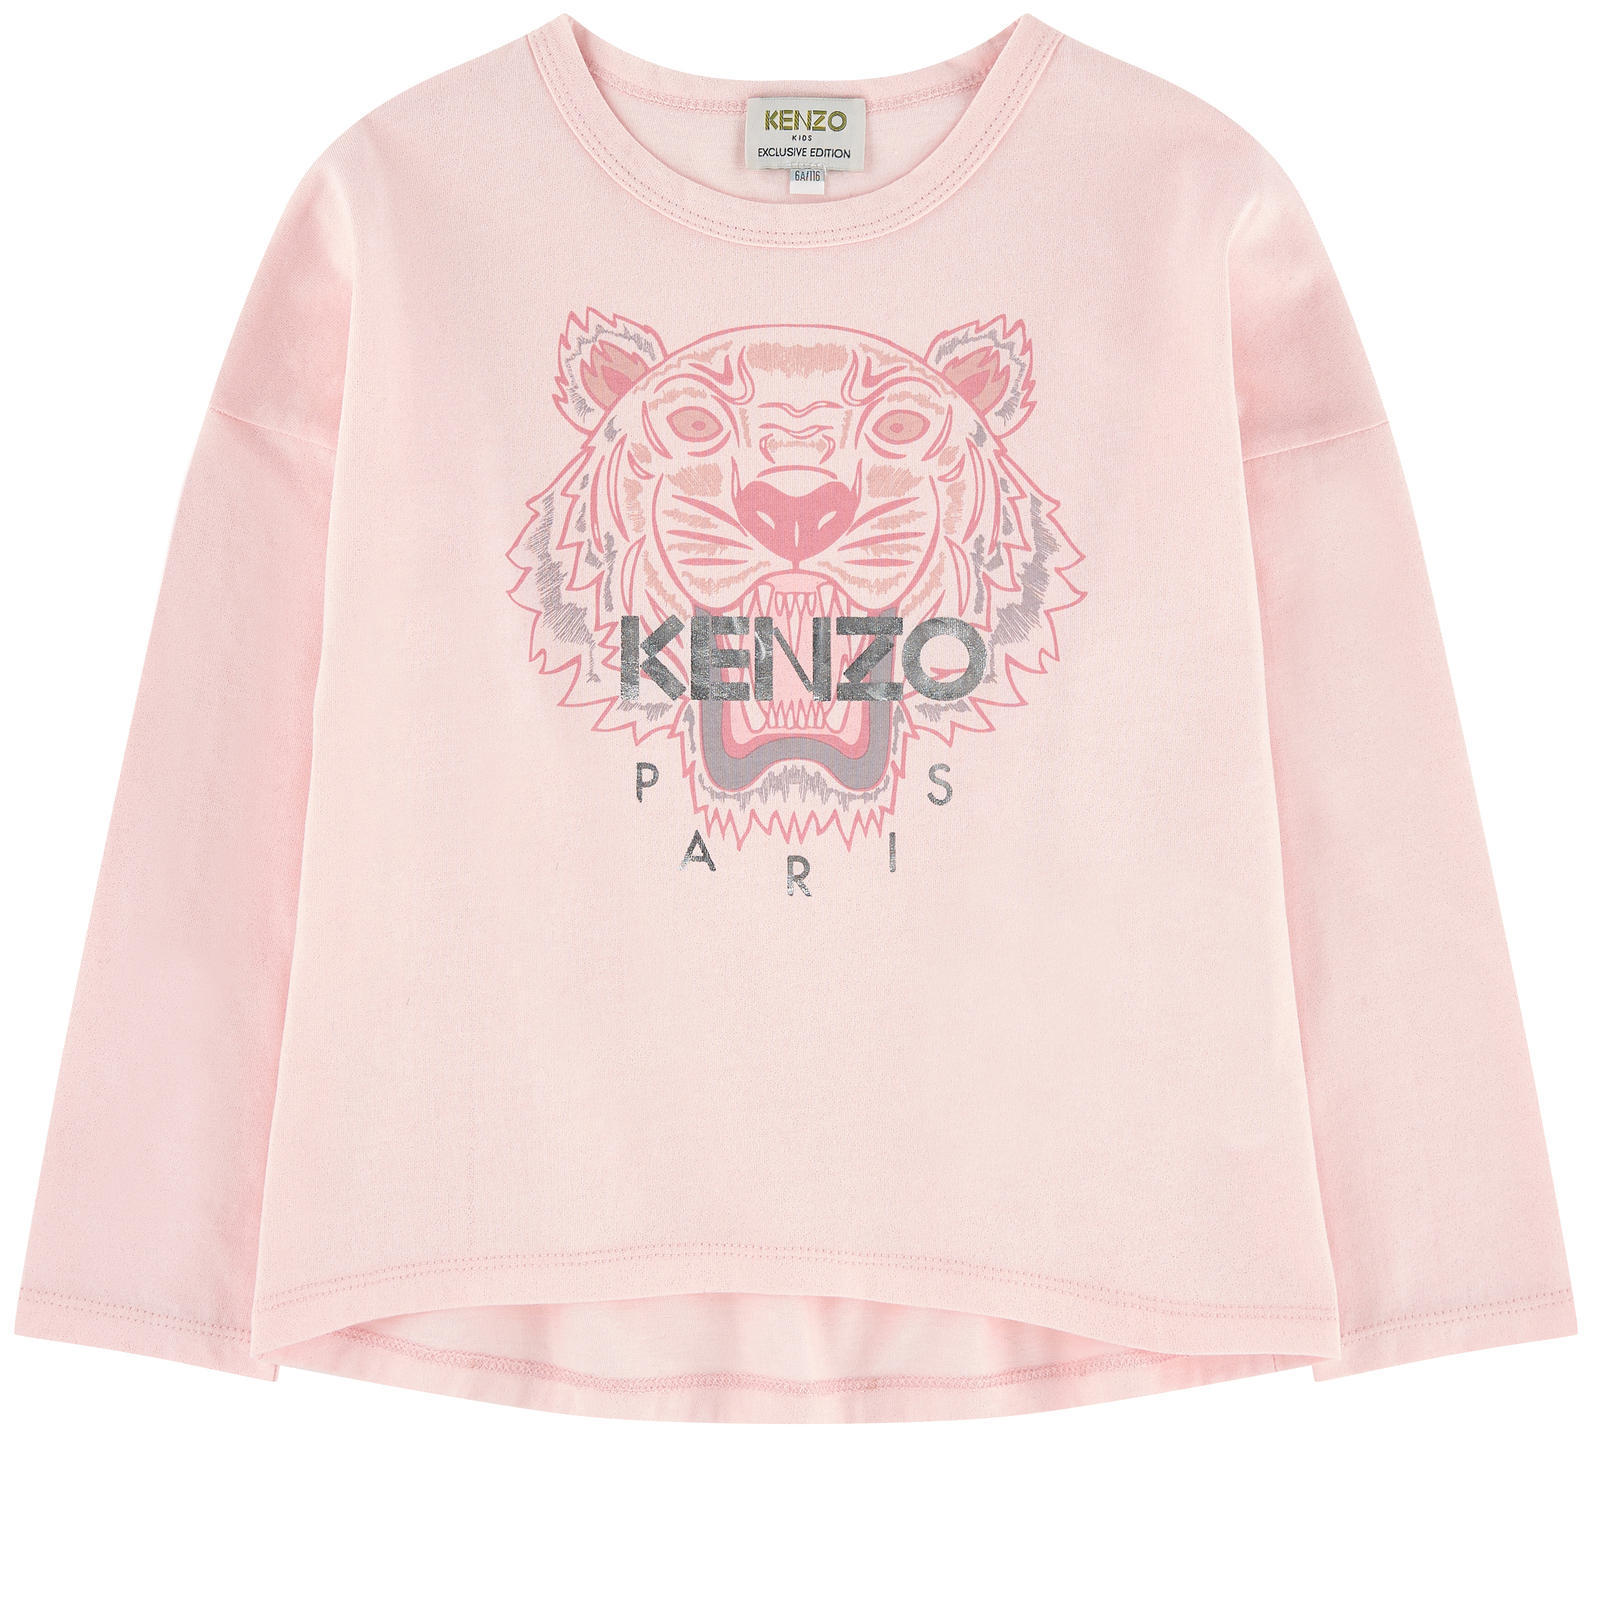 KENZO★2017AW★タイガー長袖Tシャツ★ピンク★8~12Y